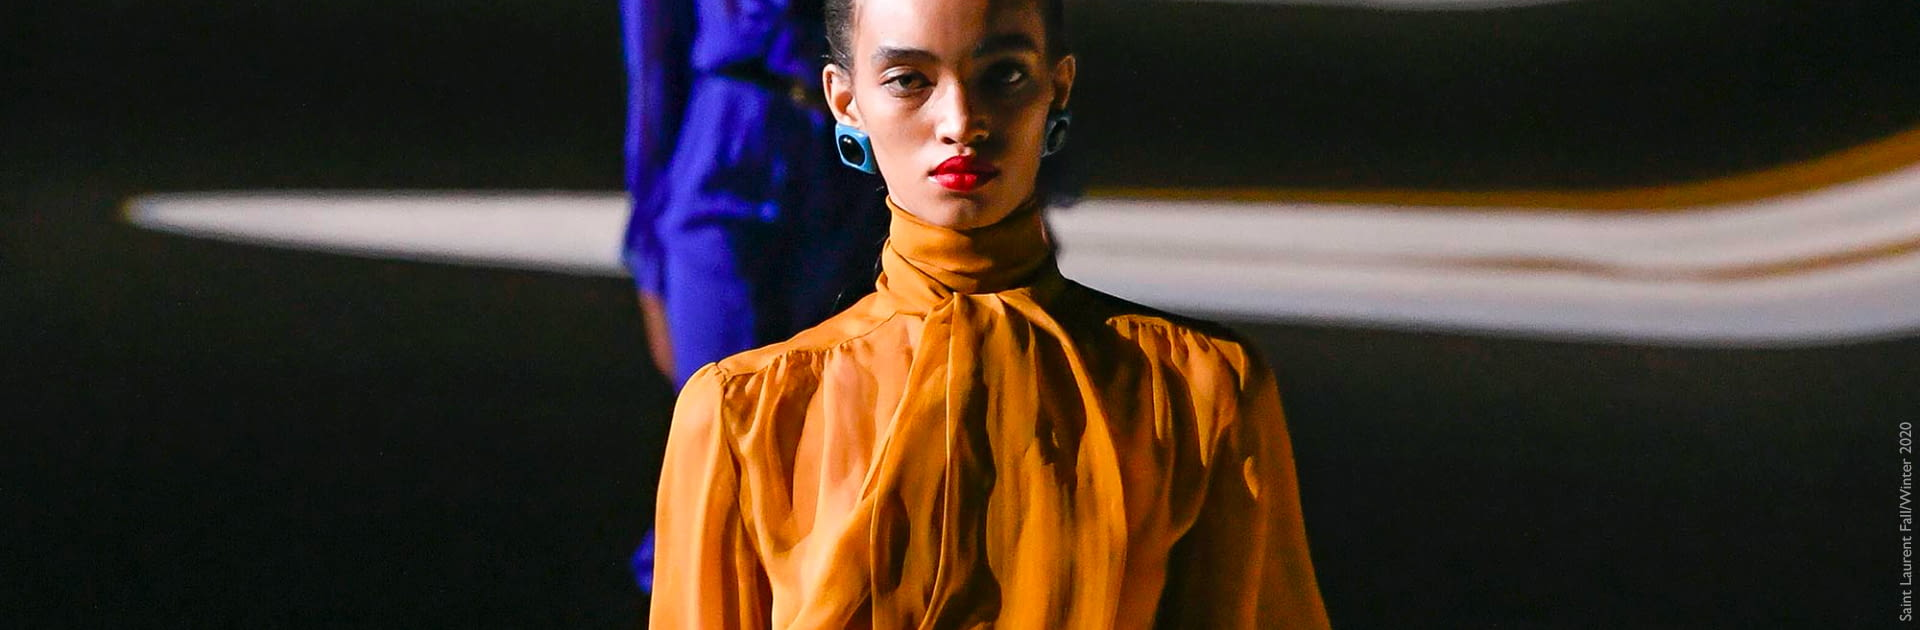 THE A TO Z OF MATERIALS ON THE RUNWAY